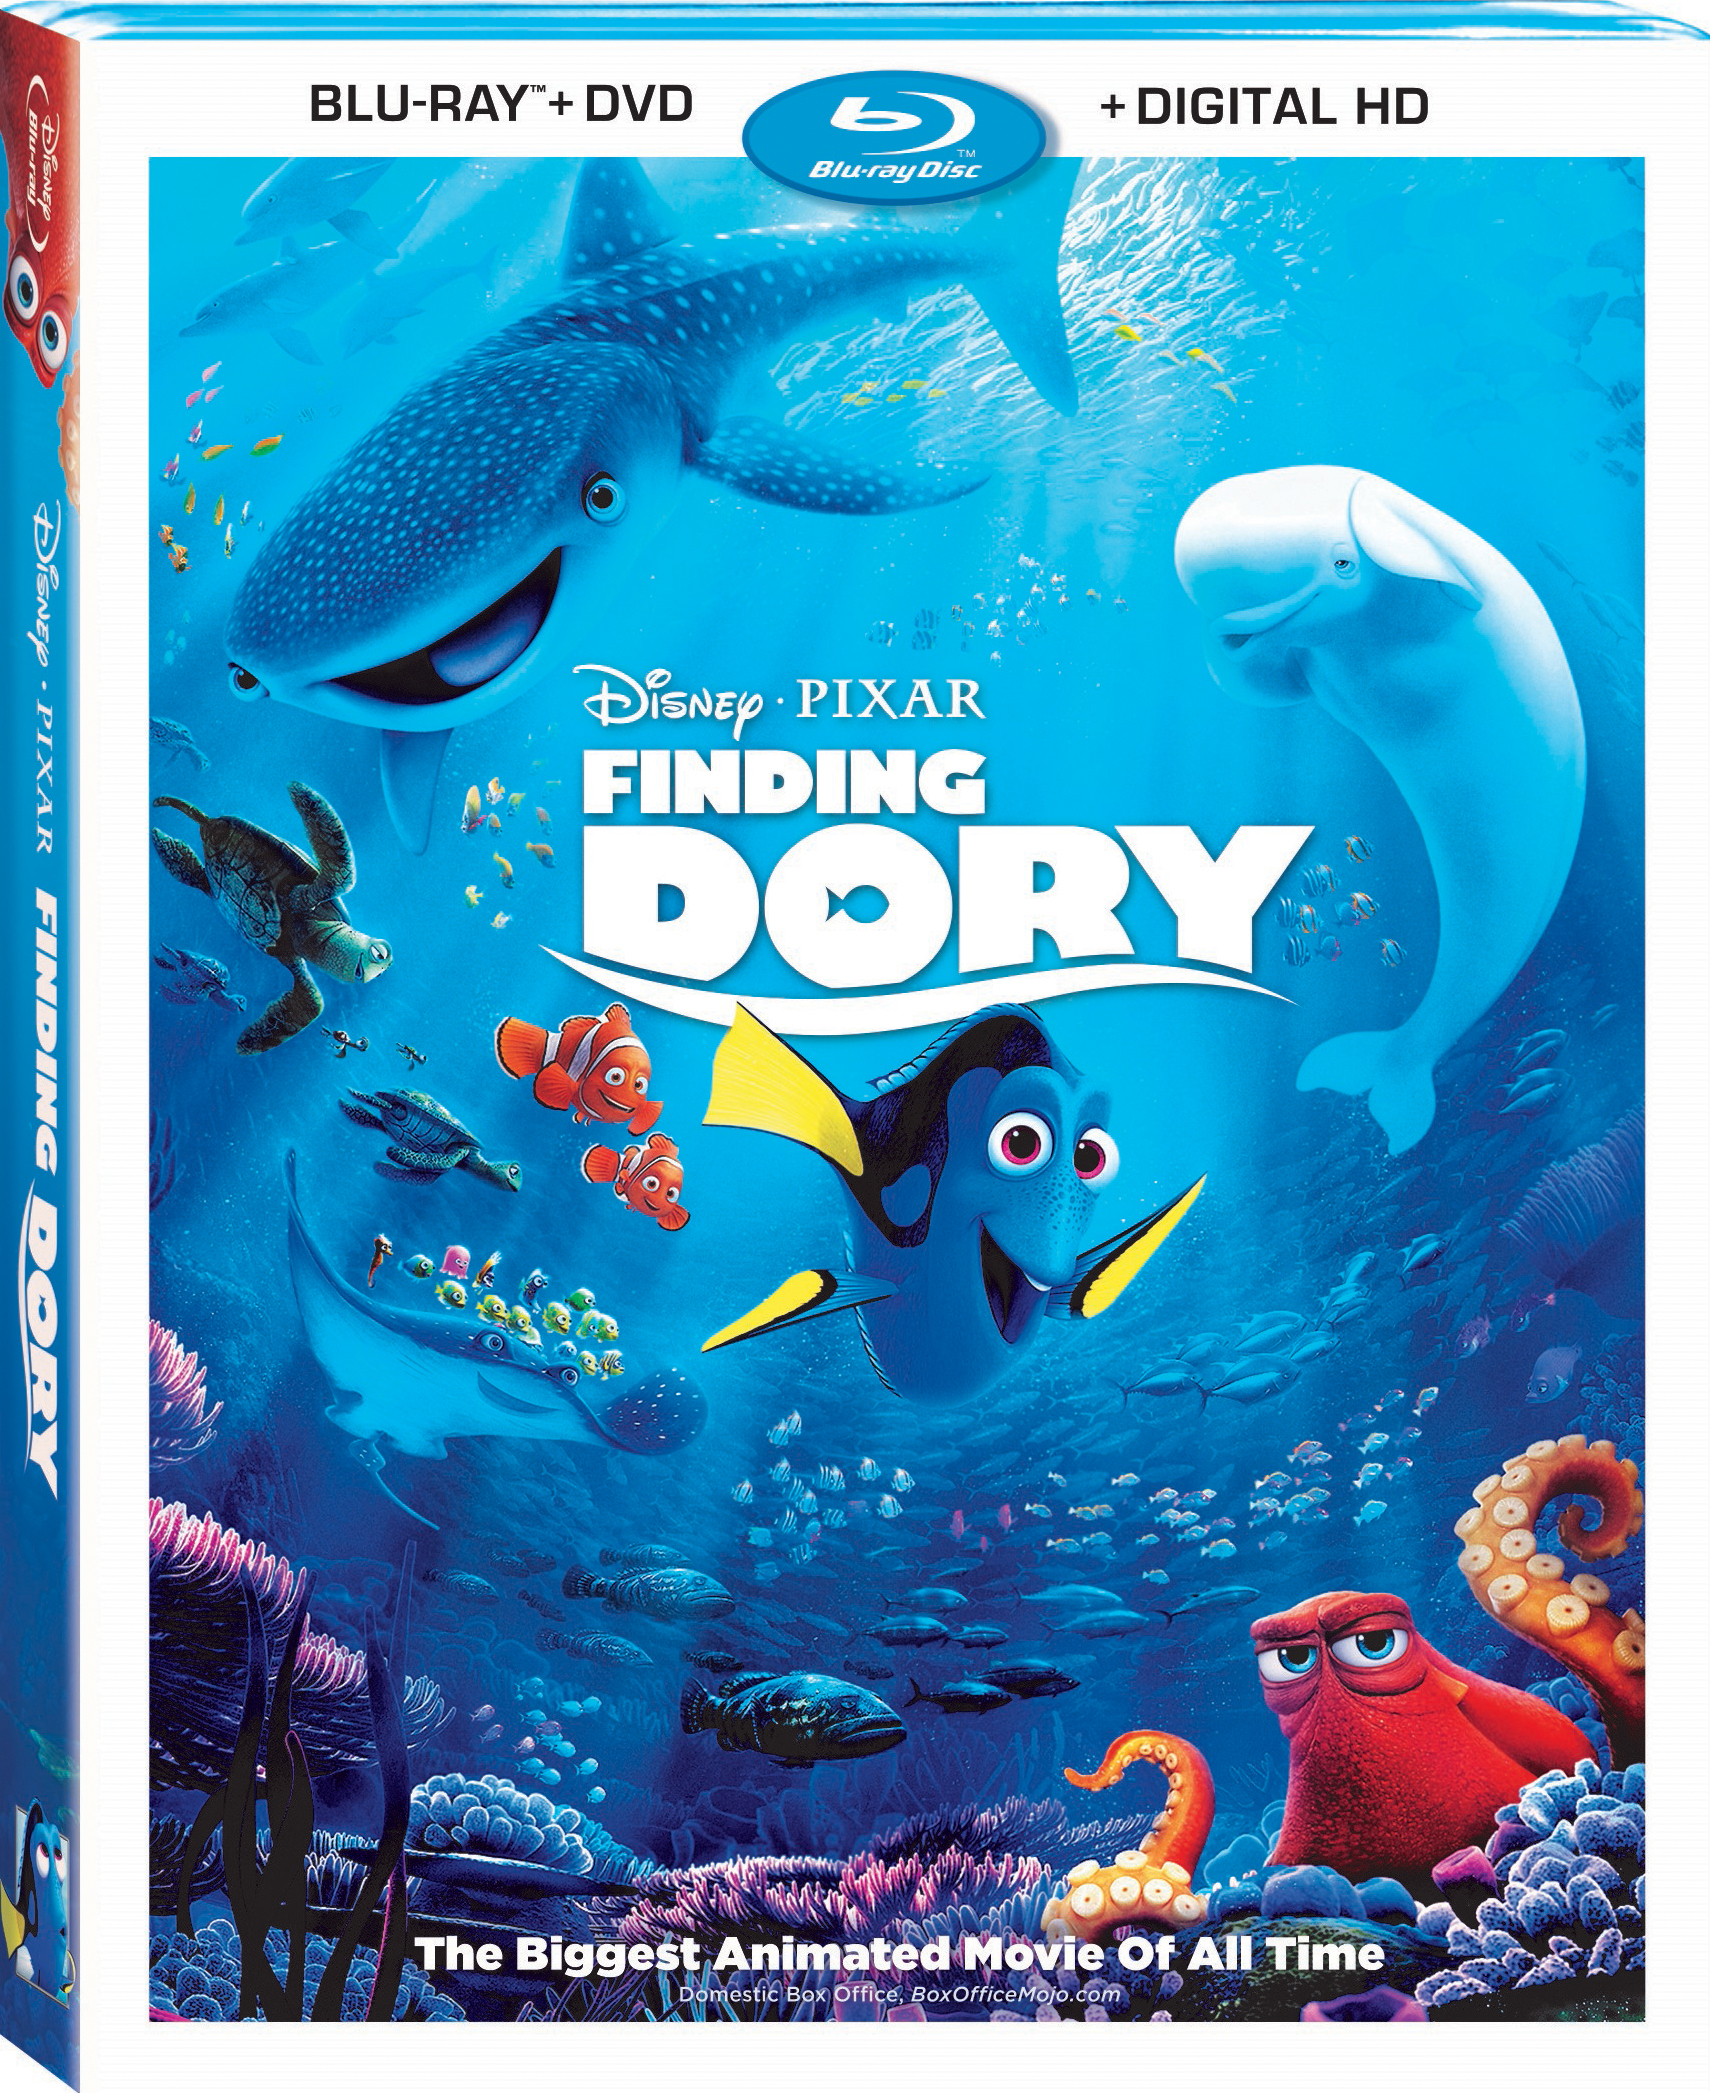 Finding Dory (Blu-ray/DVD)